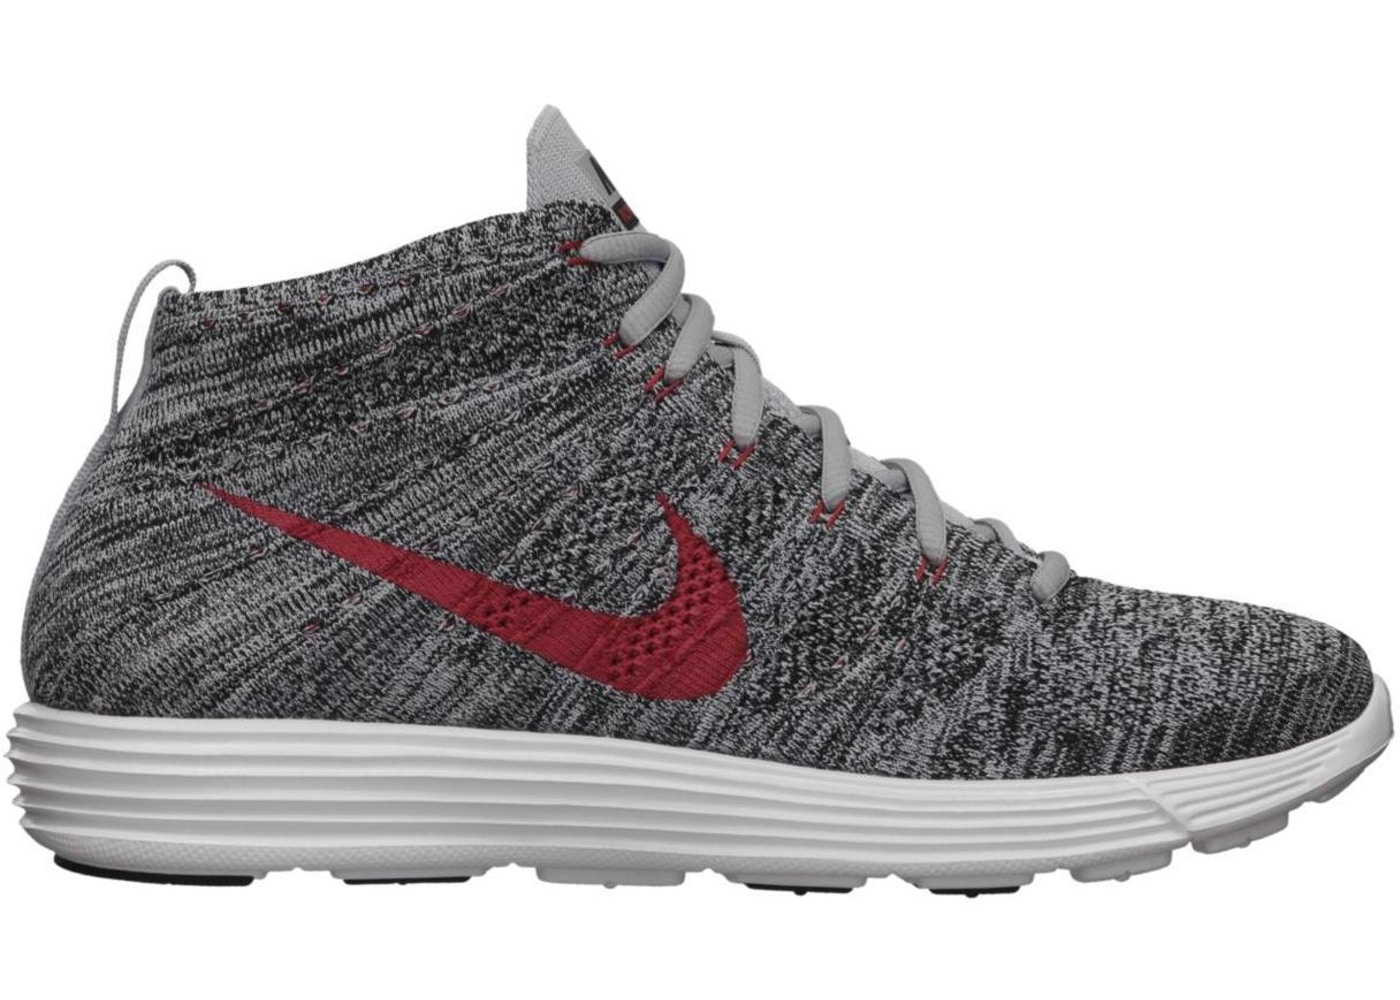 info for 9f144 a5dfa Sell. or Ask. Size: 10.5. View All Bids. Nike Lunar Flyknit Chukka Wolf  Grey Red